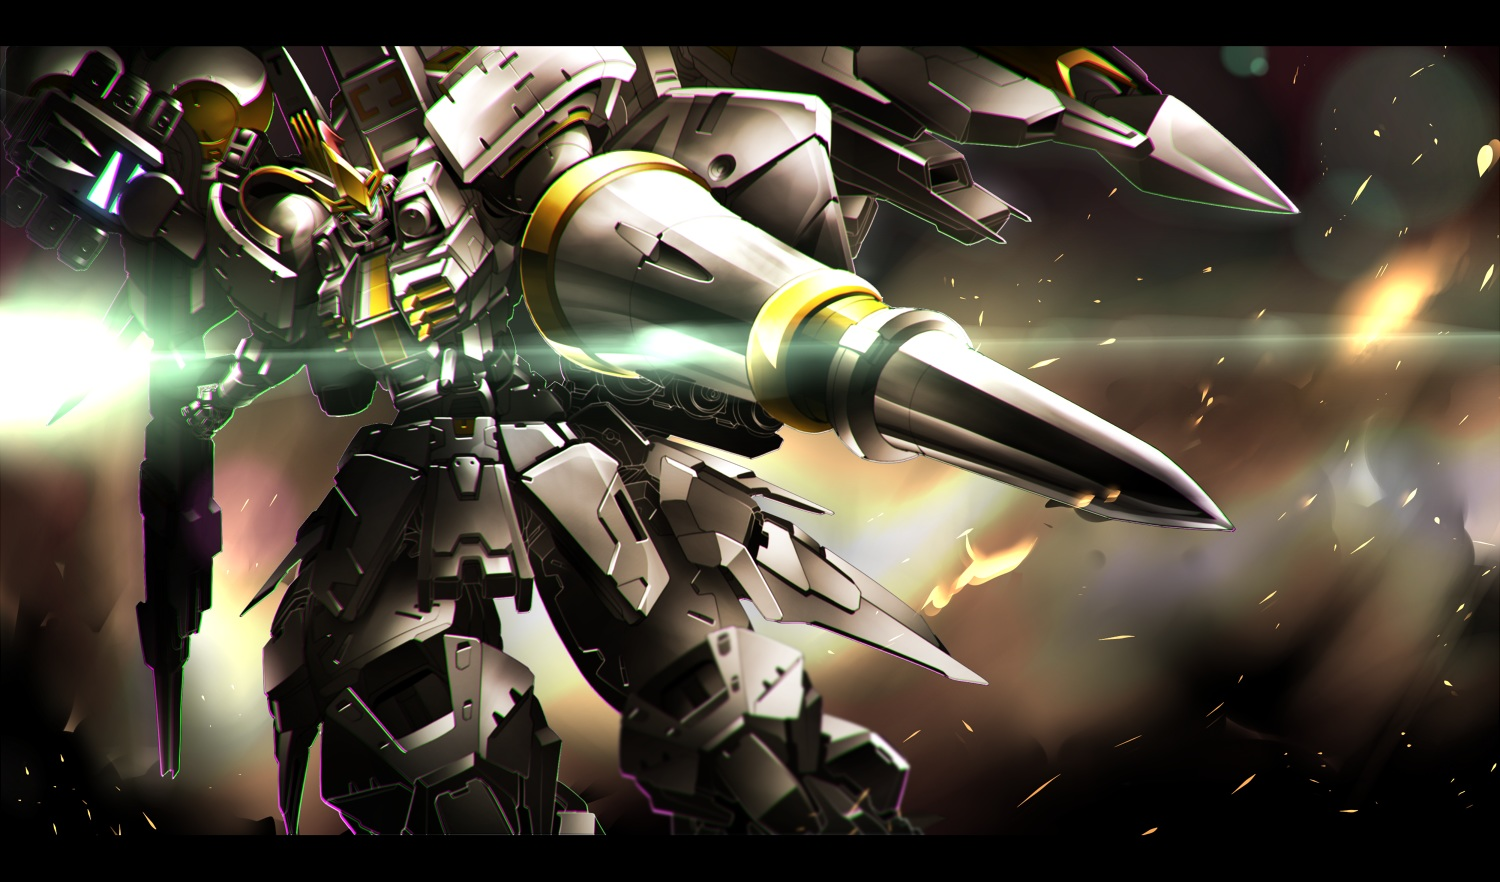 gomi_kushige mecha mobile_suit_gundam robot weapon